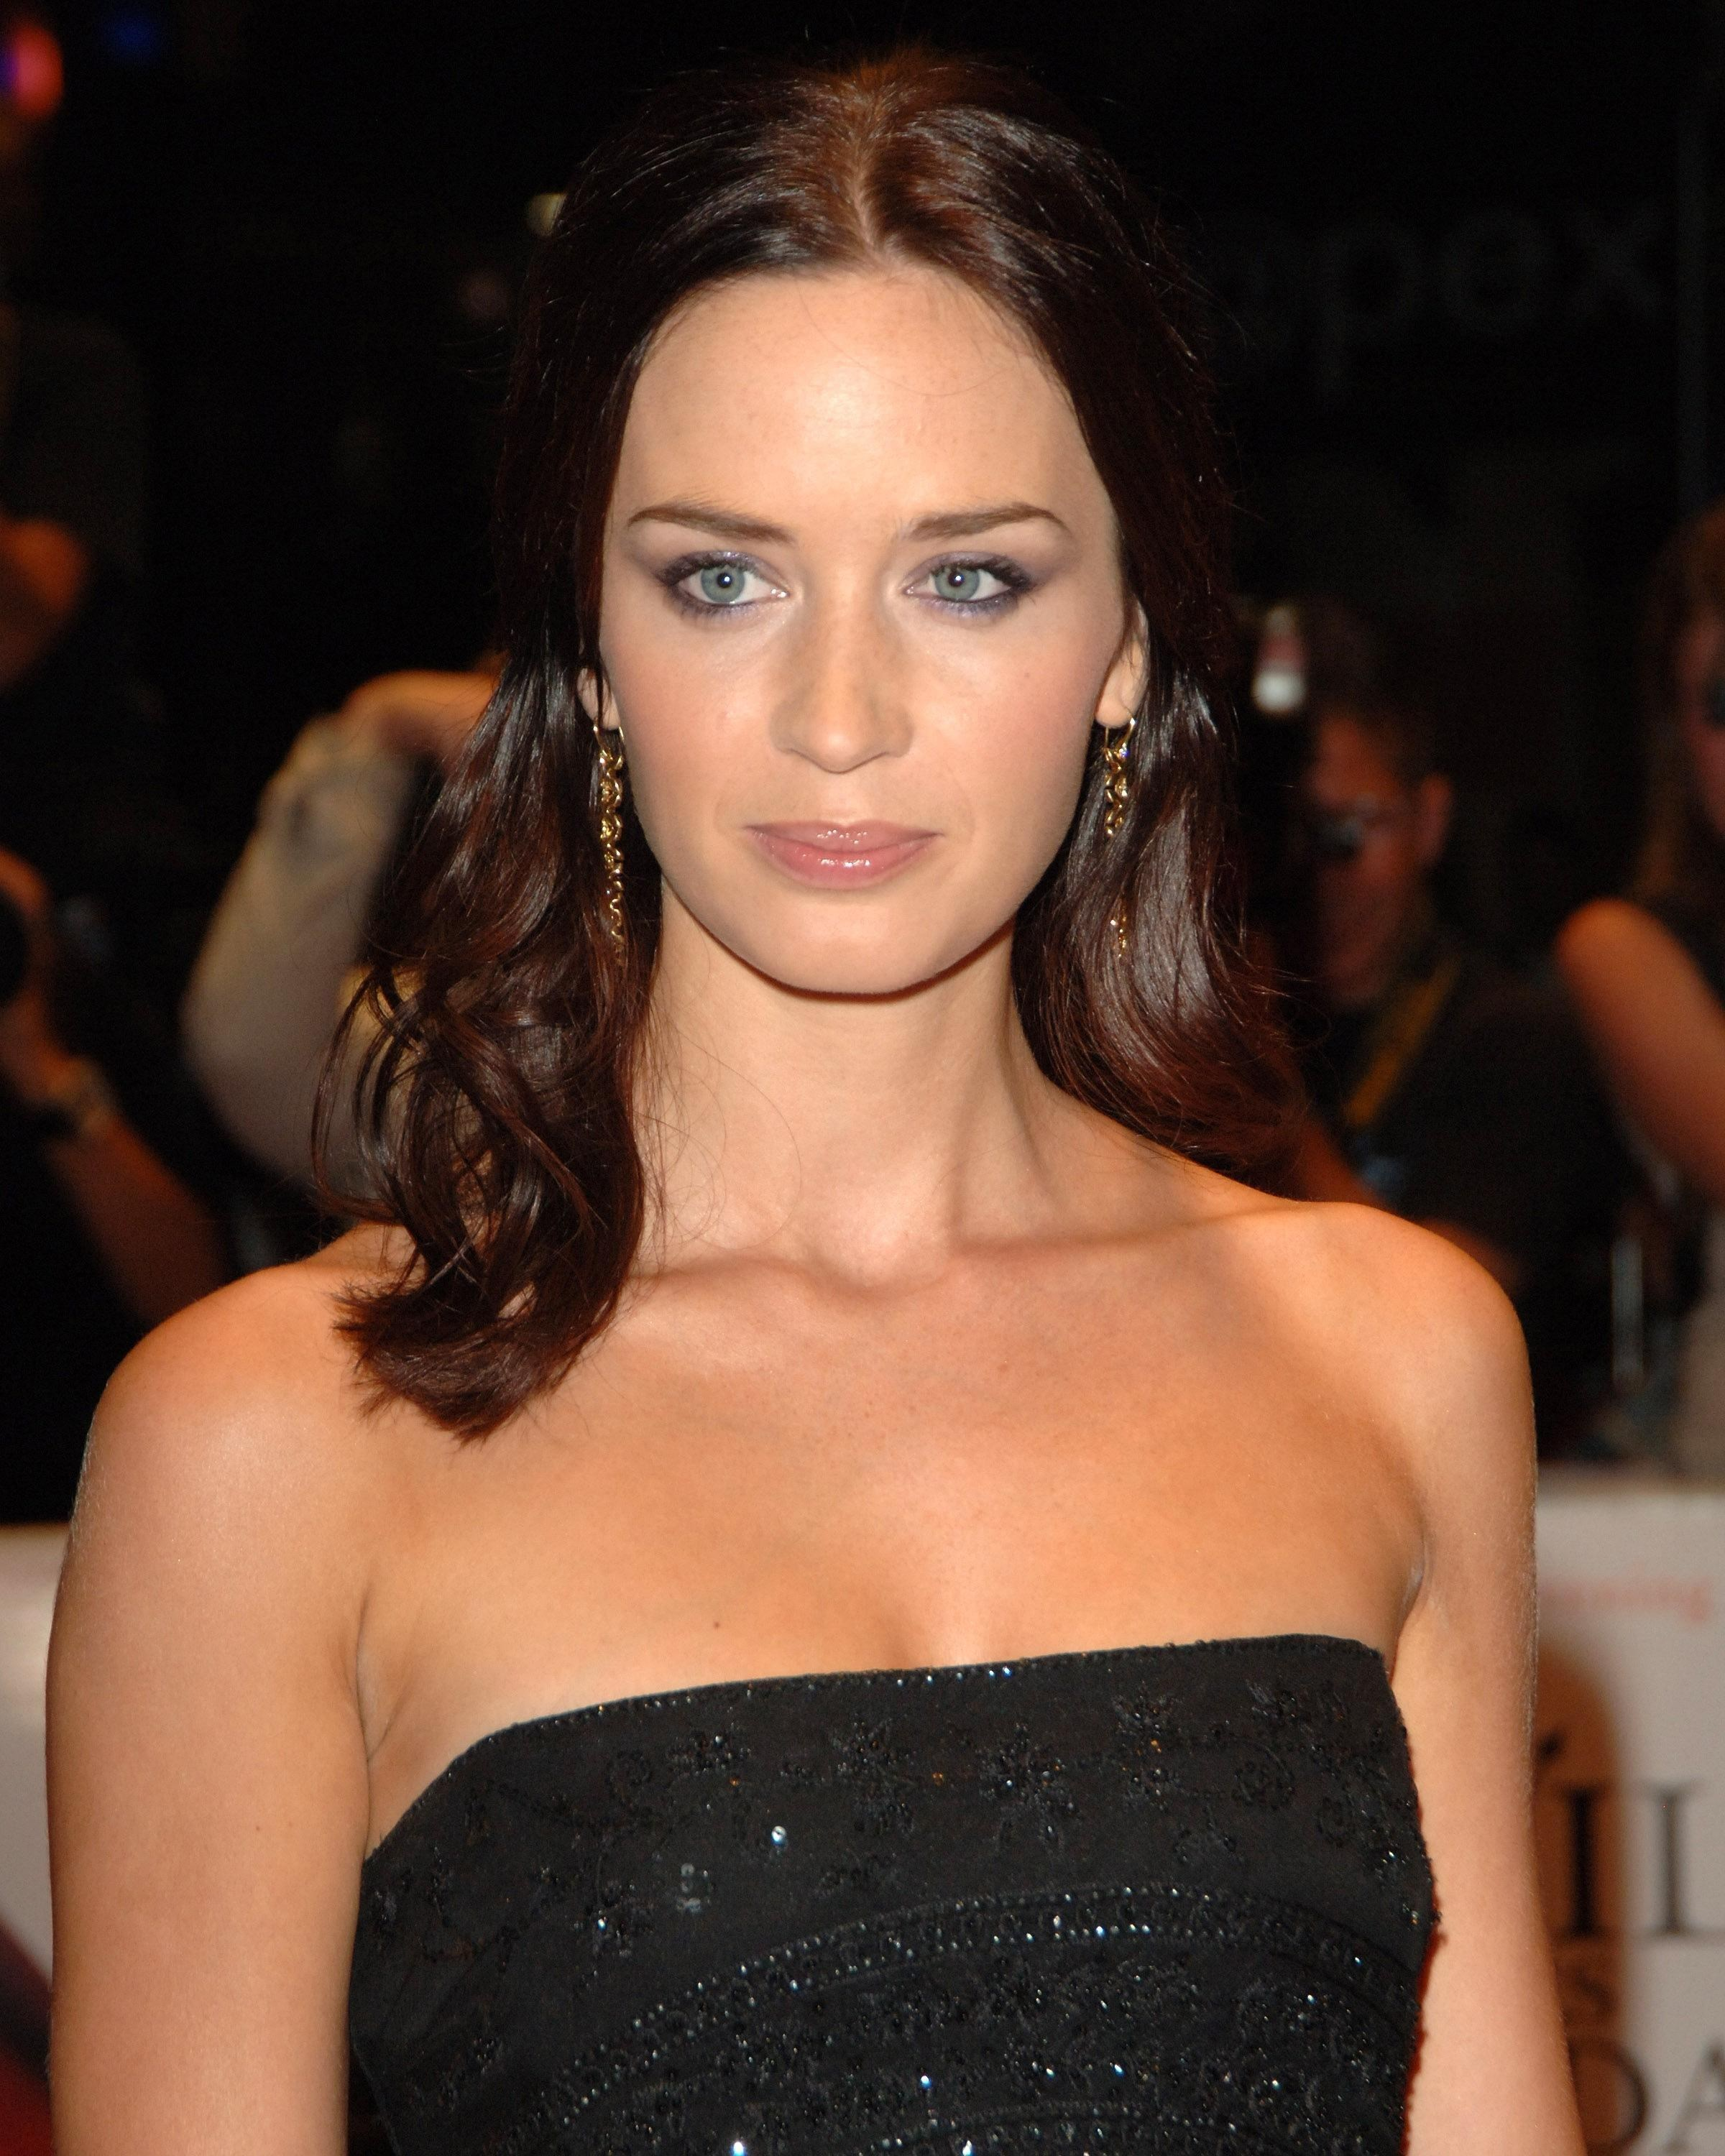 Emily Blunt | Known people - famous people news and ... Emily Blunt